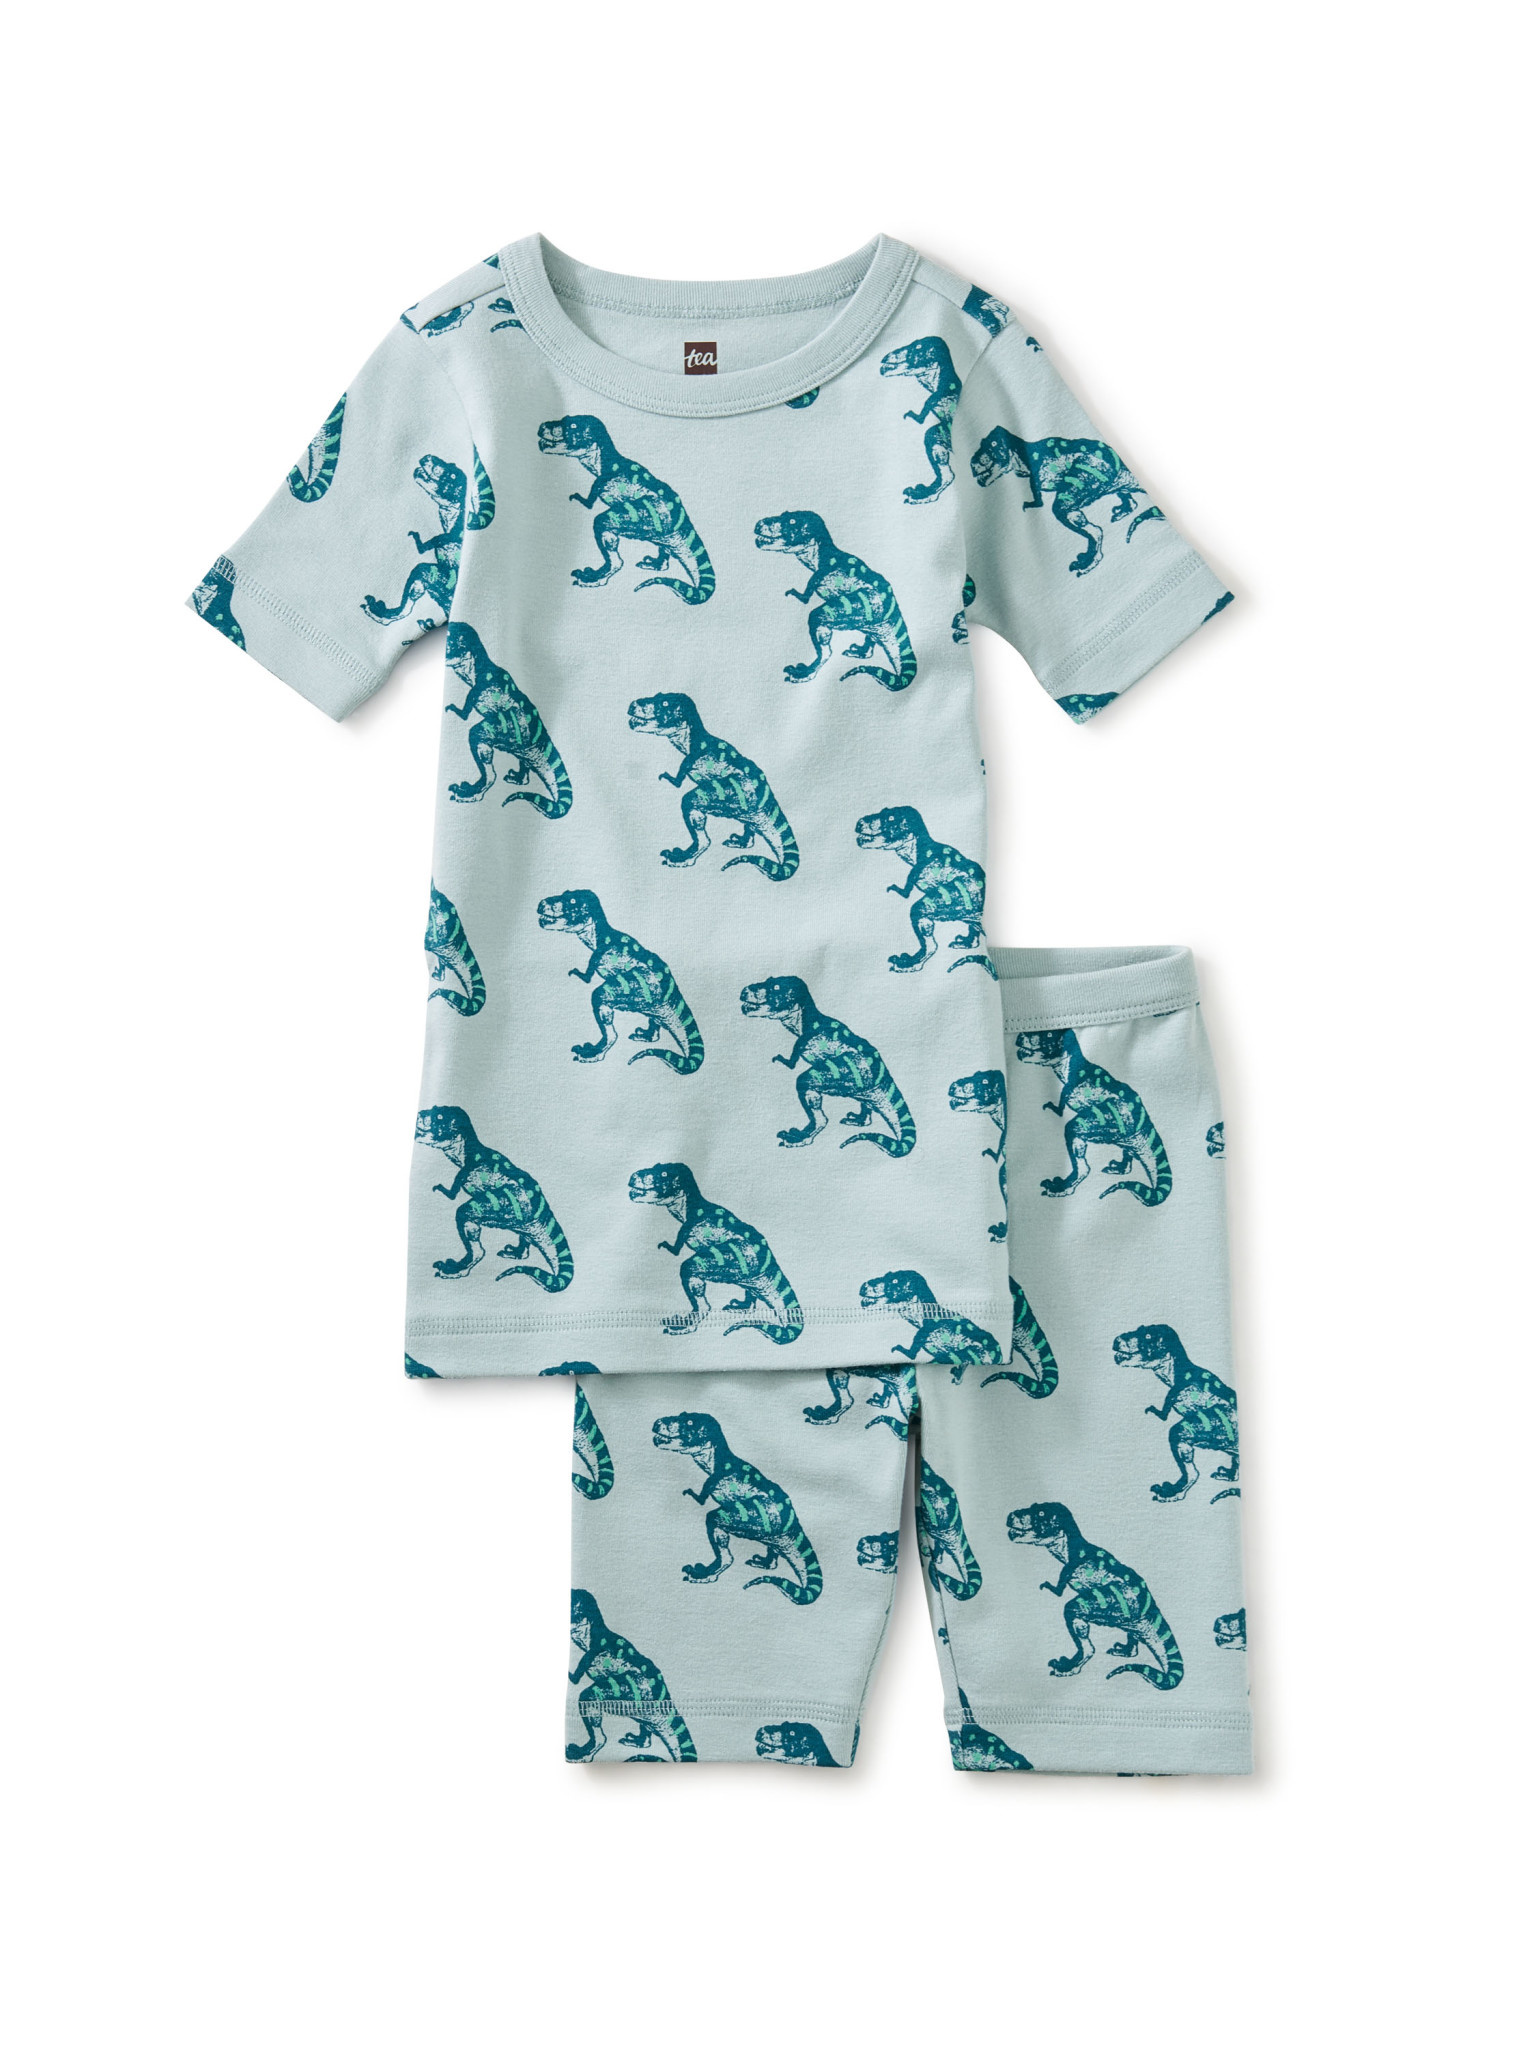 Tea Collection In Your Dreams Pajama Set - Patterned Dinosaur